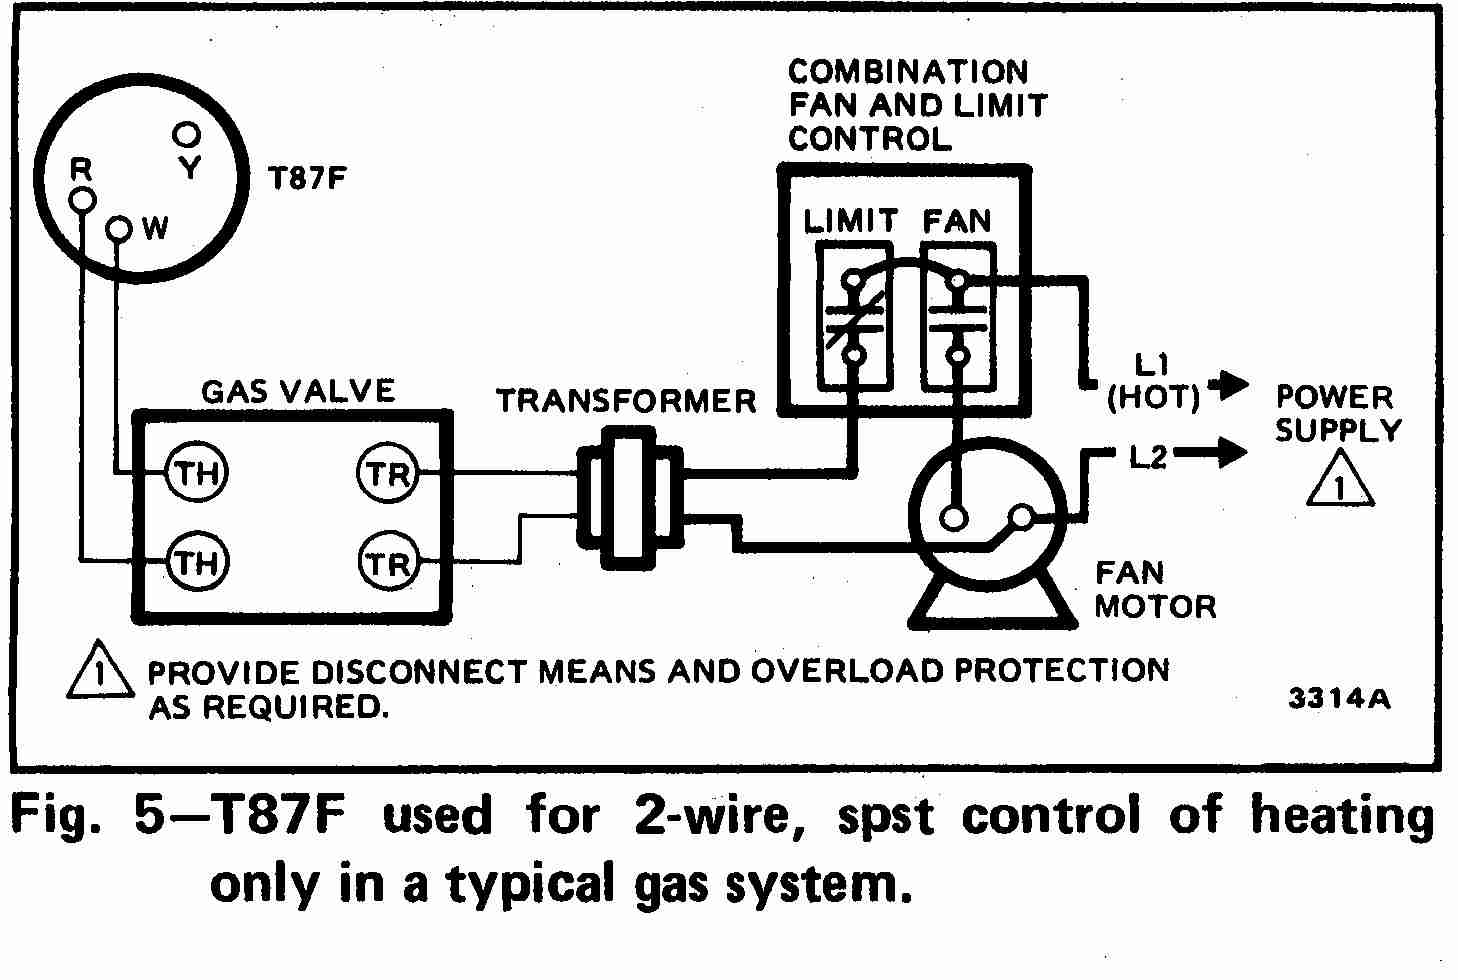 mercury thermostat wiring oil furnace wiring diagram for you • guide to wiring connections for room thermostats rh inspectapedia com oil furnace thermostat wiring diagram honeywell in furnace thermostat wiring diagram